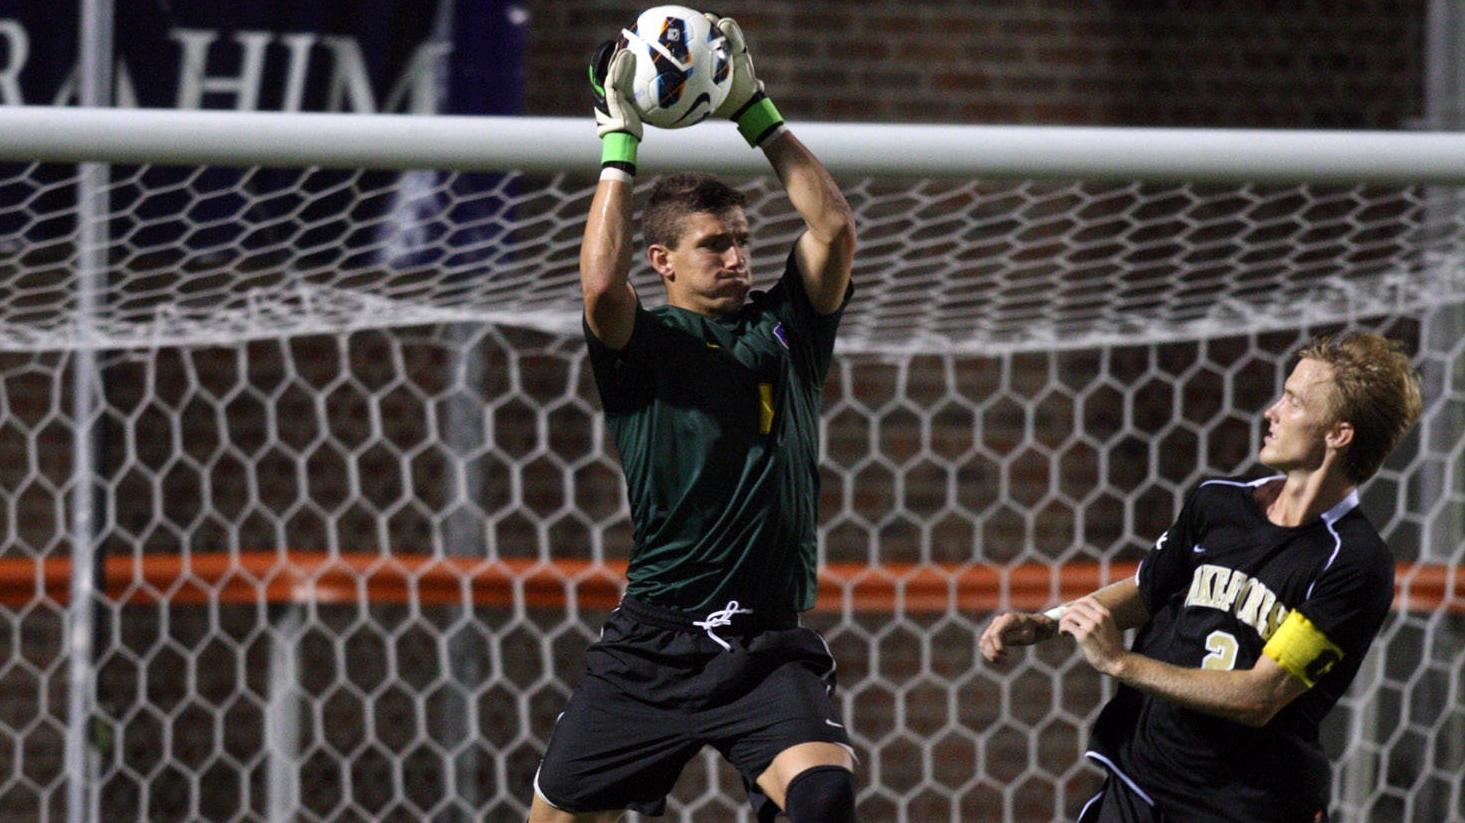 Clemson Will Play Host to #24 UAB Monday Night